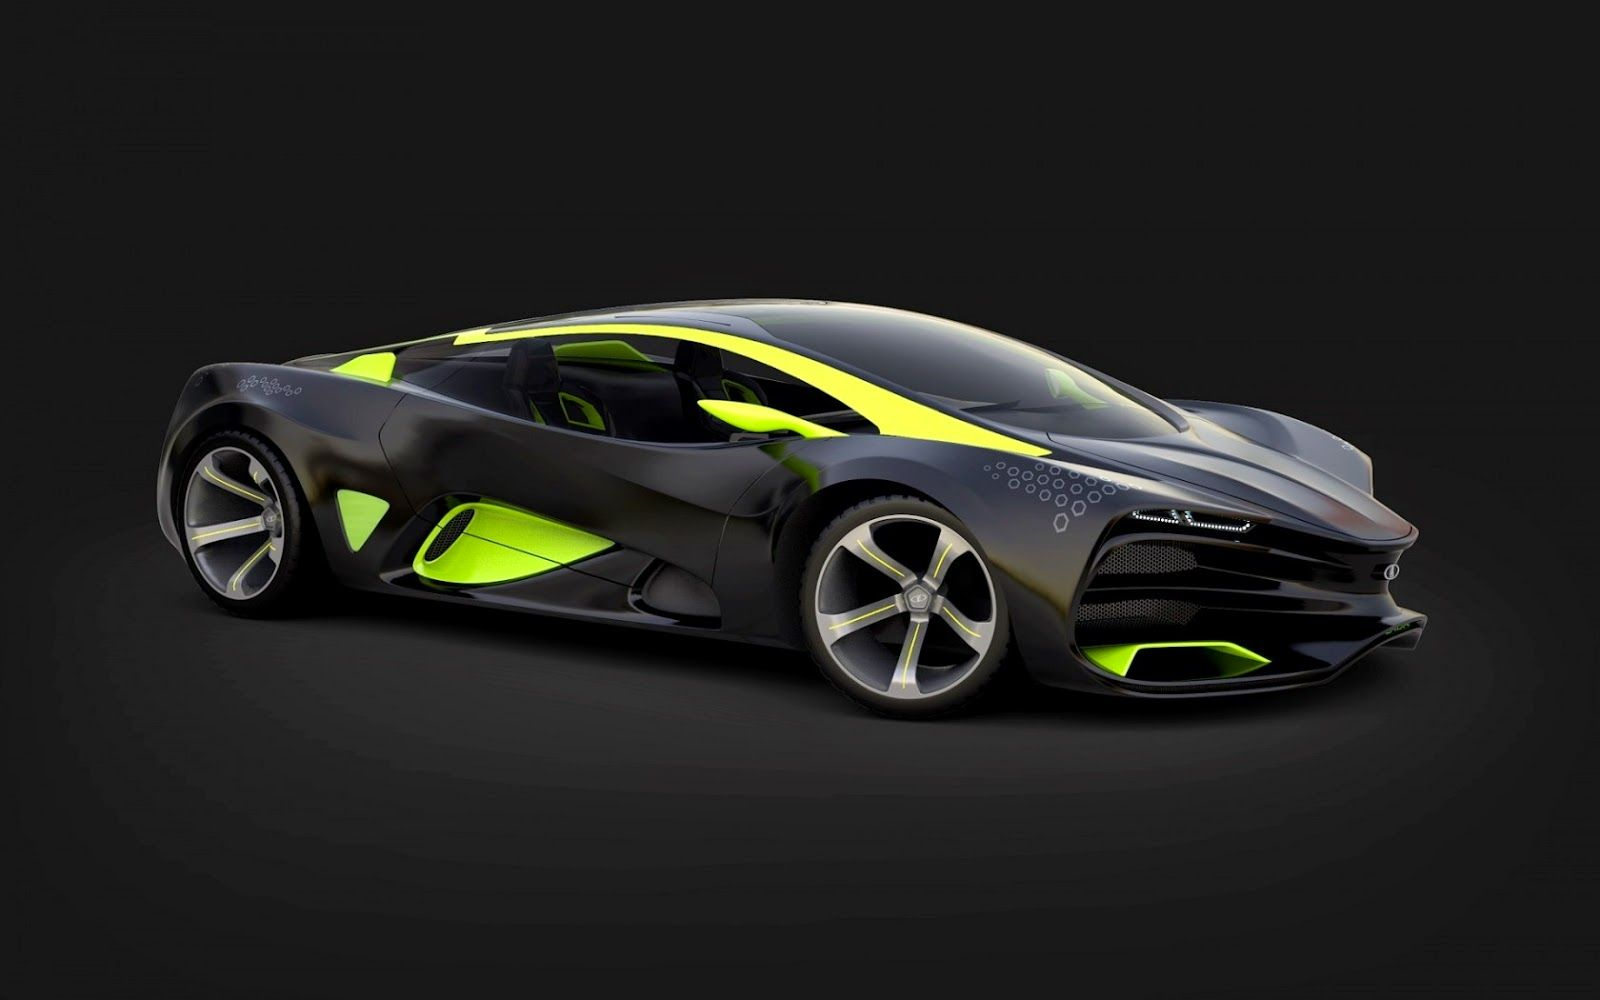 Lada Raven Full Hd Wallpaper Super Car Car Super Cars